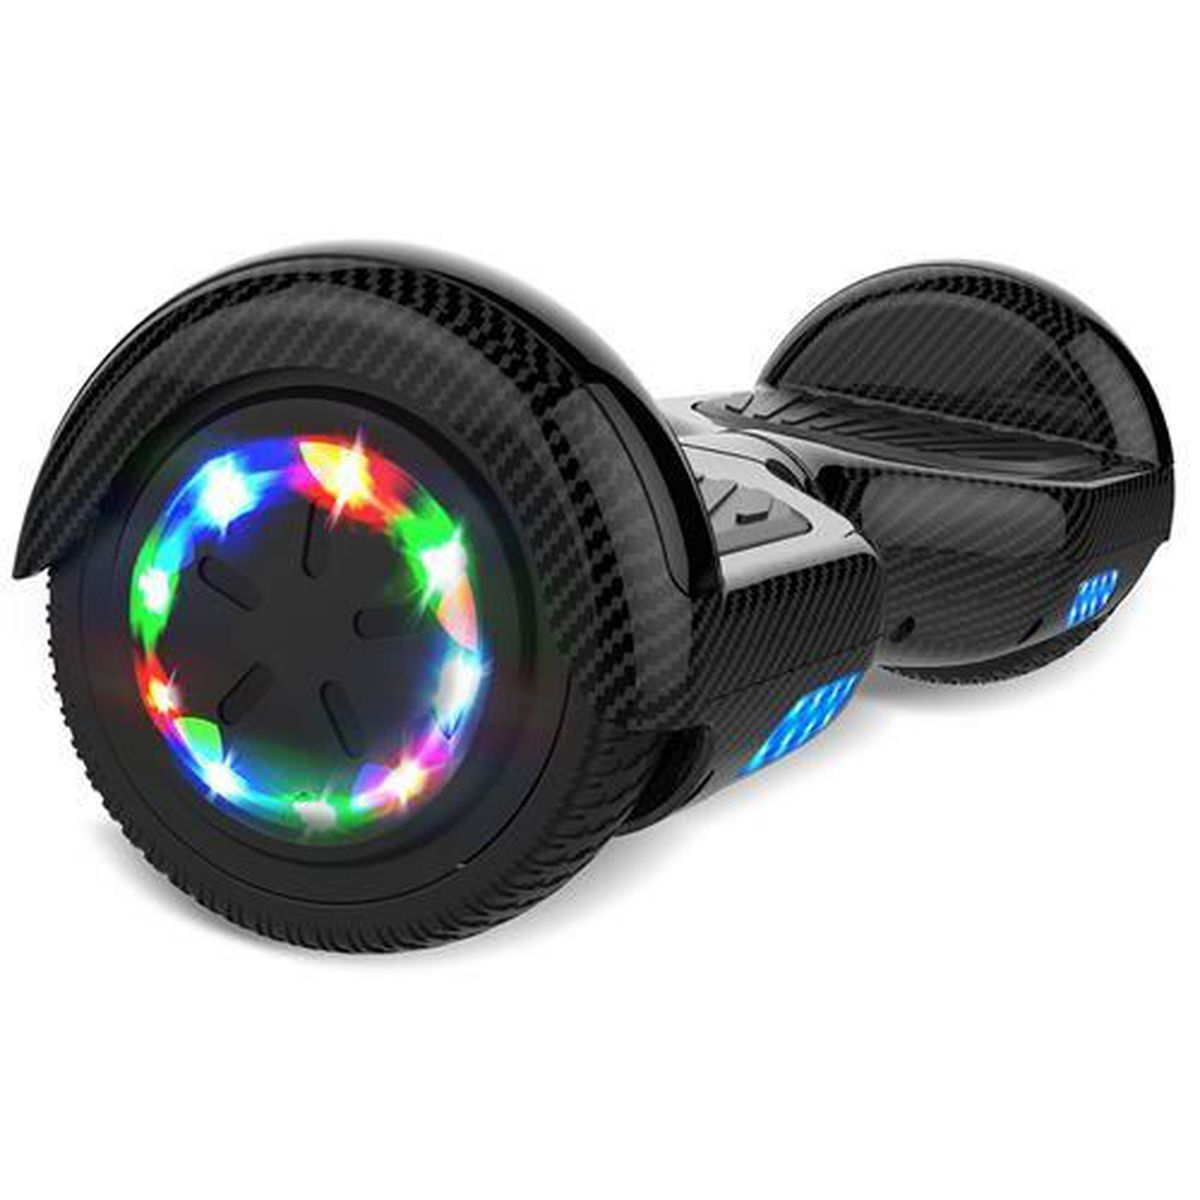 ACCESSOIRES GYROPODE - HOVERBOARD Hoverboard 6.5 Pouces, Gyropode avec Bluetooth et